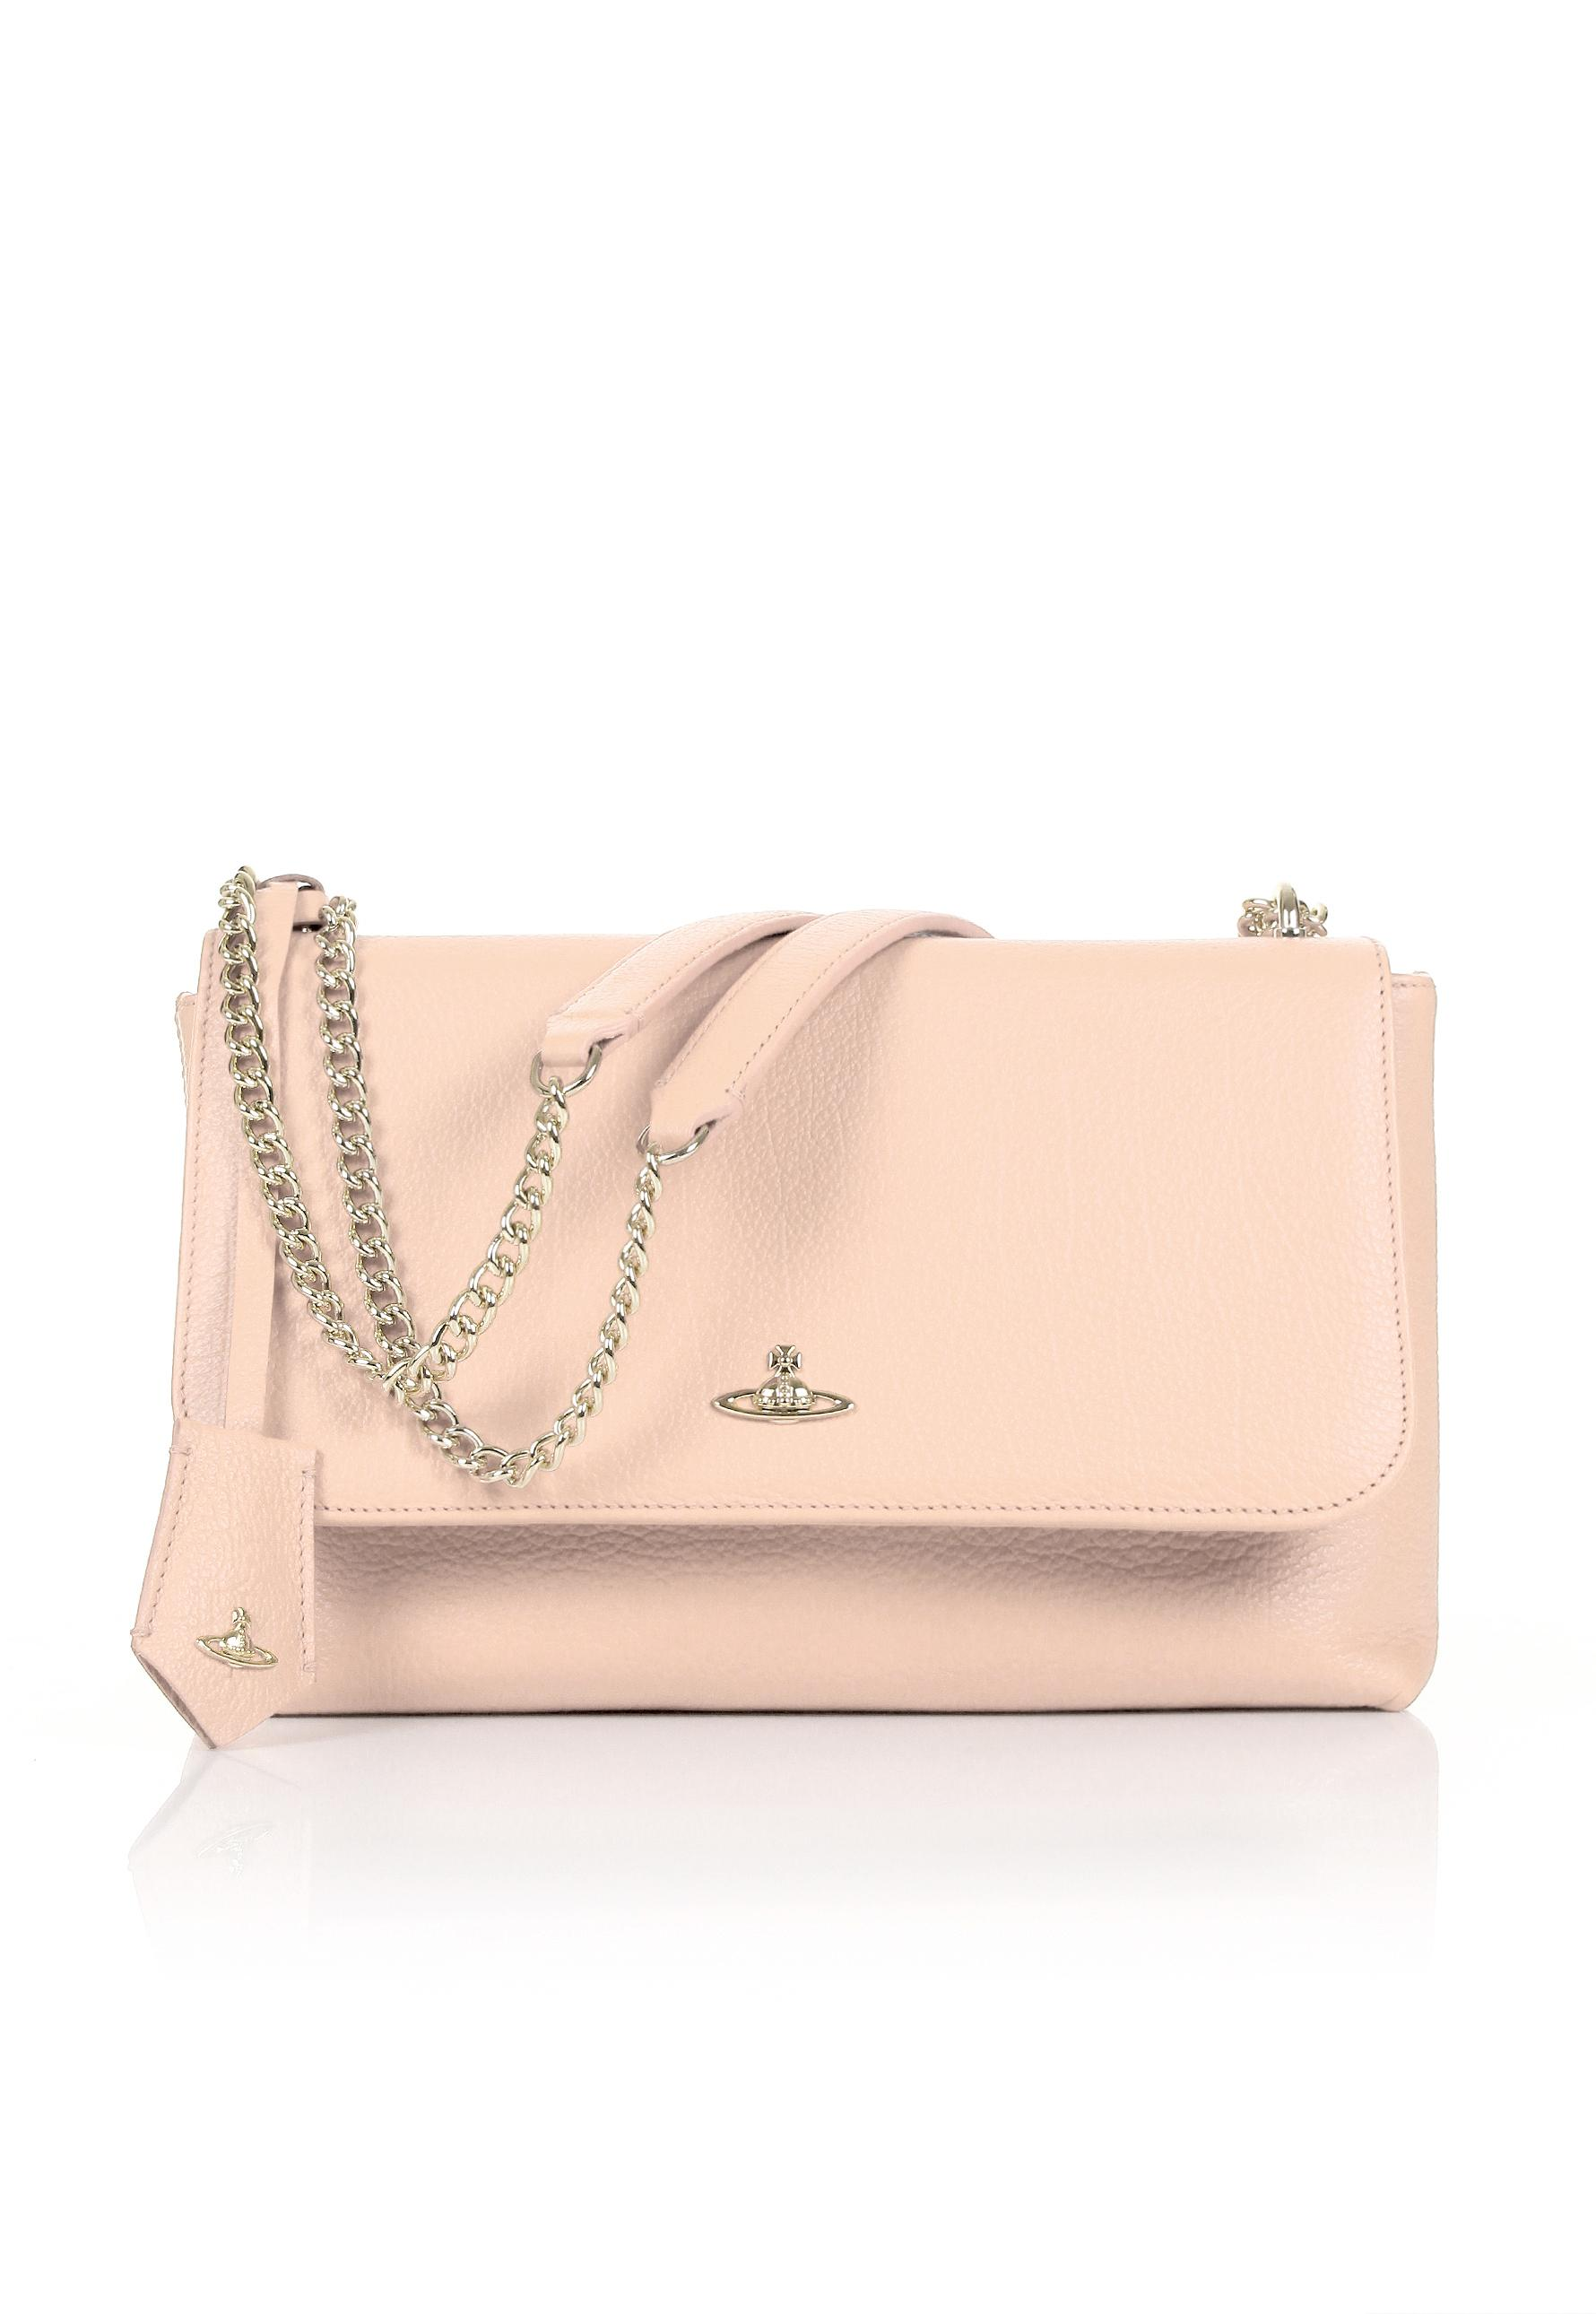 0ae94eee70fe Vivienne Westwood Balmoral 131116 Large Bag With Flap Pink cream in ...